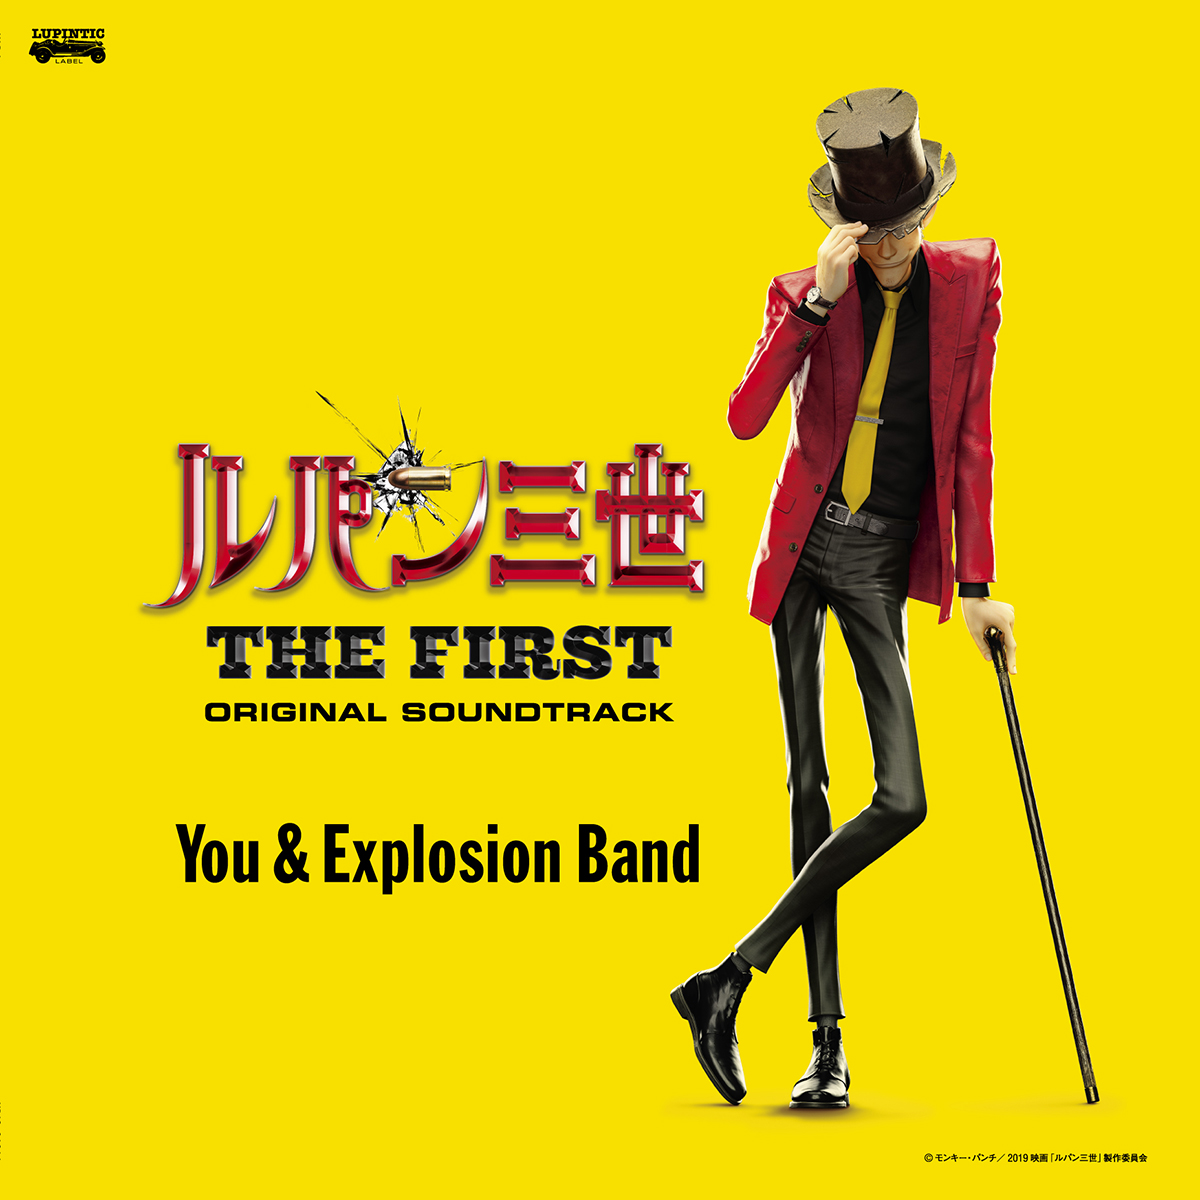 You & Explosion Band – 映画「ルパン三世 THE FIRST」オリジナル・サウンドトラック『LUPIN THE THIRD ~THE FIRST~』